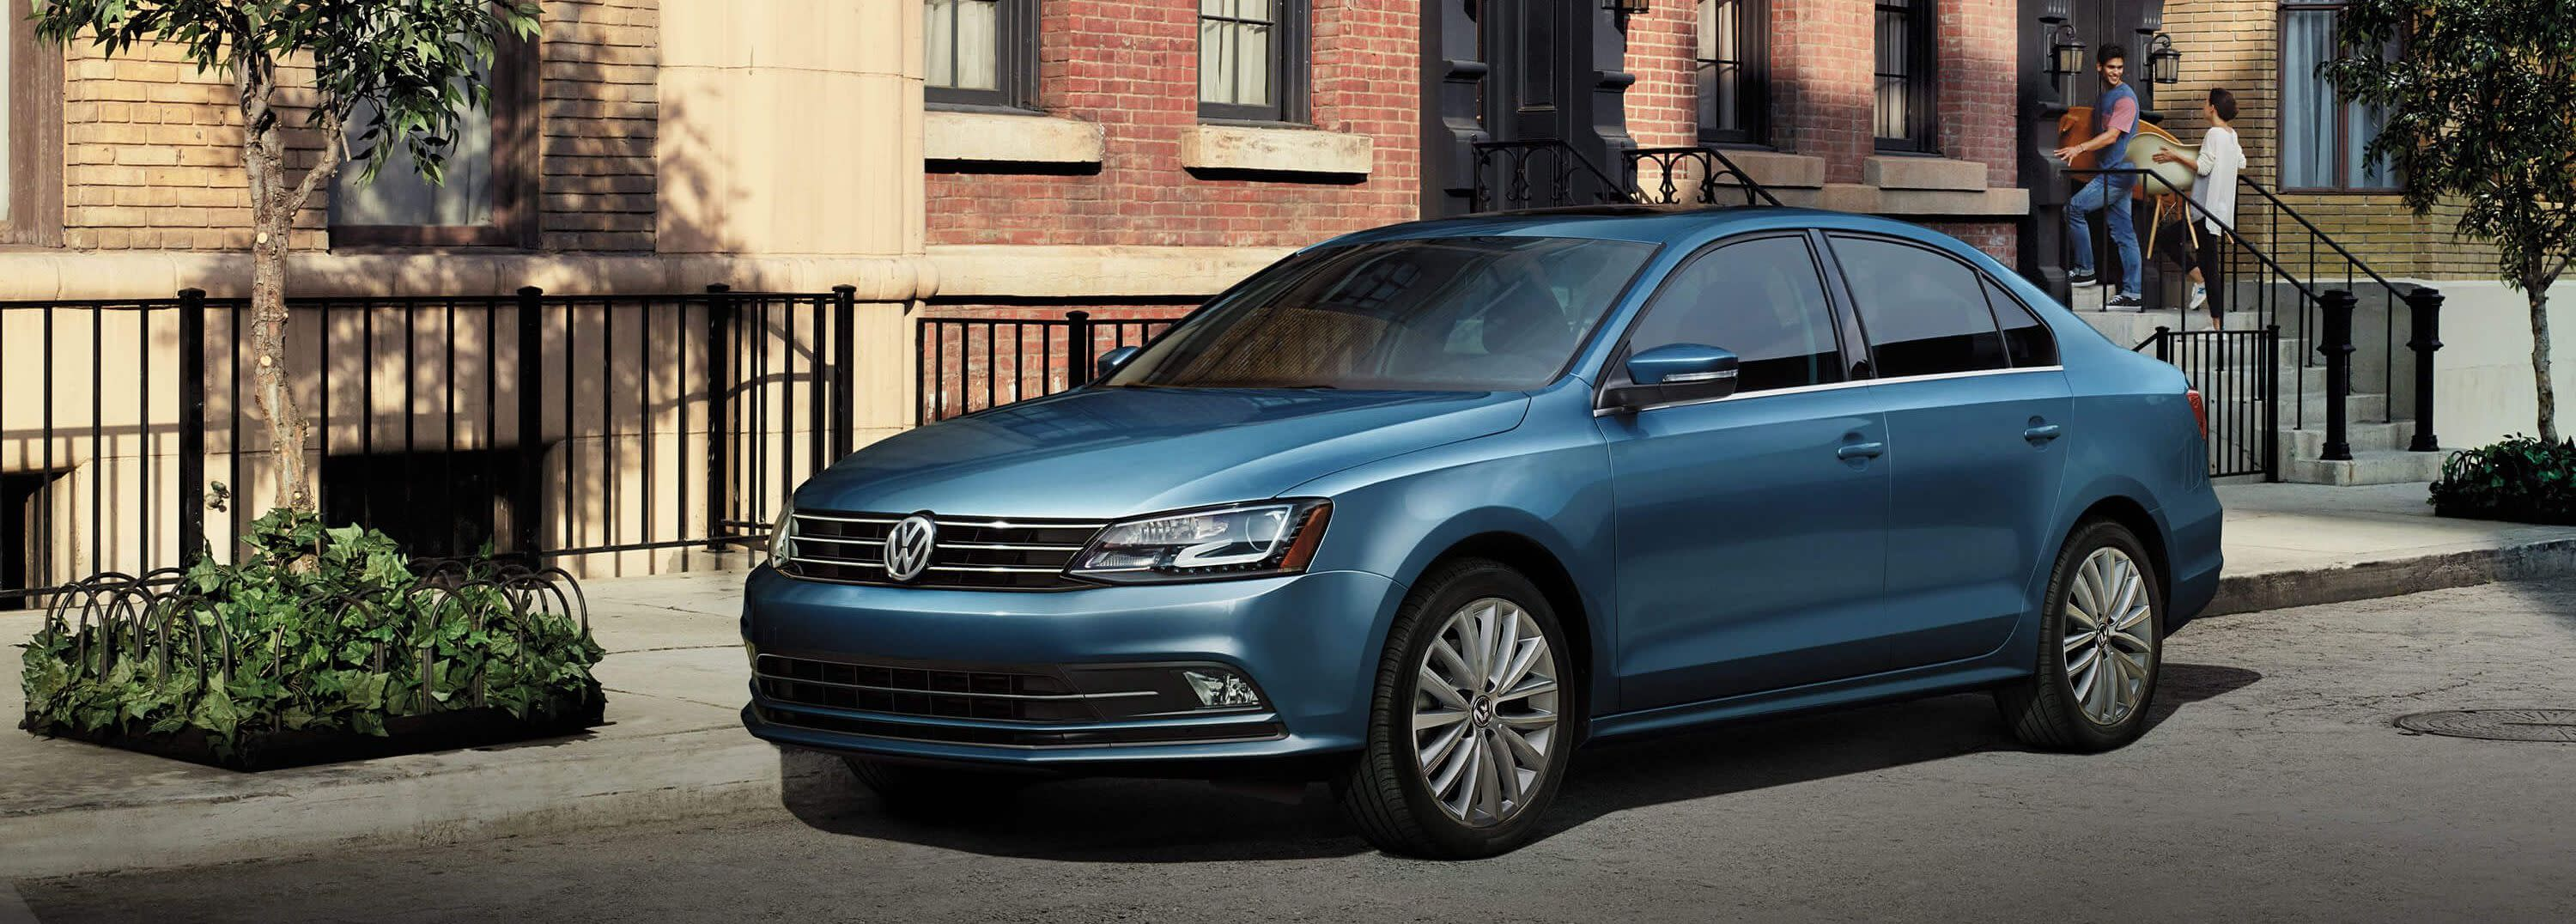 2017 VW Jetta for Sale near Baltimore, MD